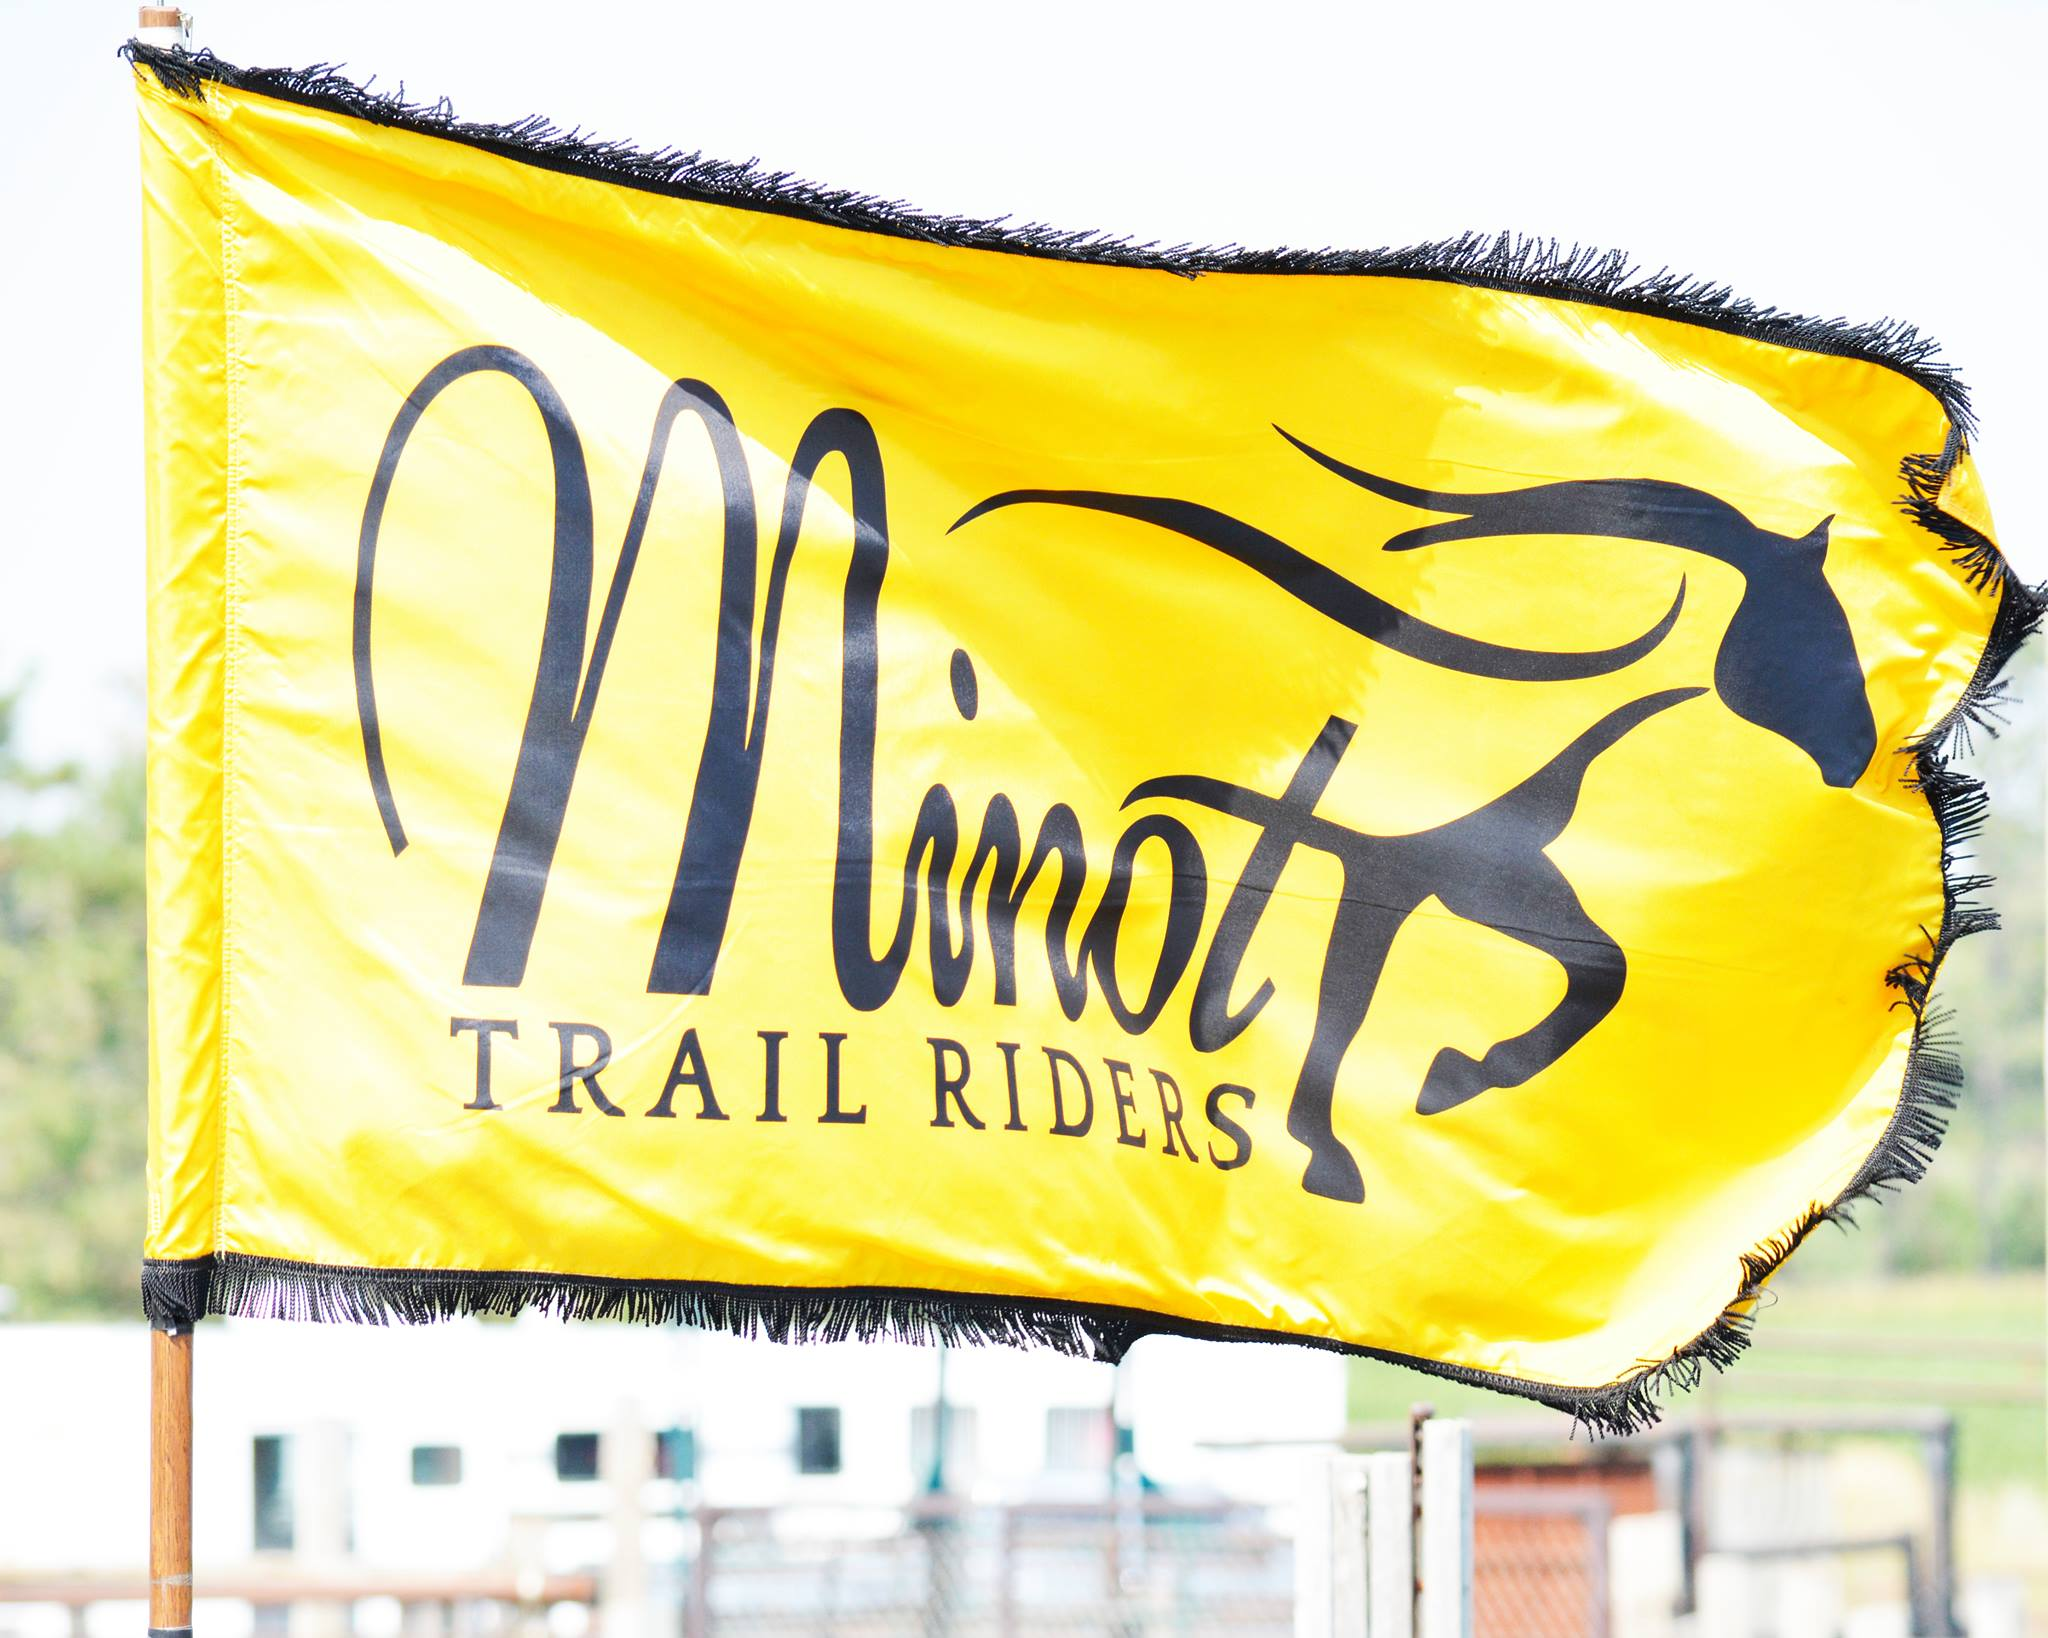 Minot Trail Riders 2201 54th Ave SE, Minot, North Dakota 58701